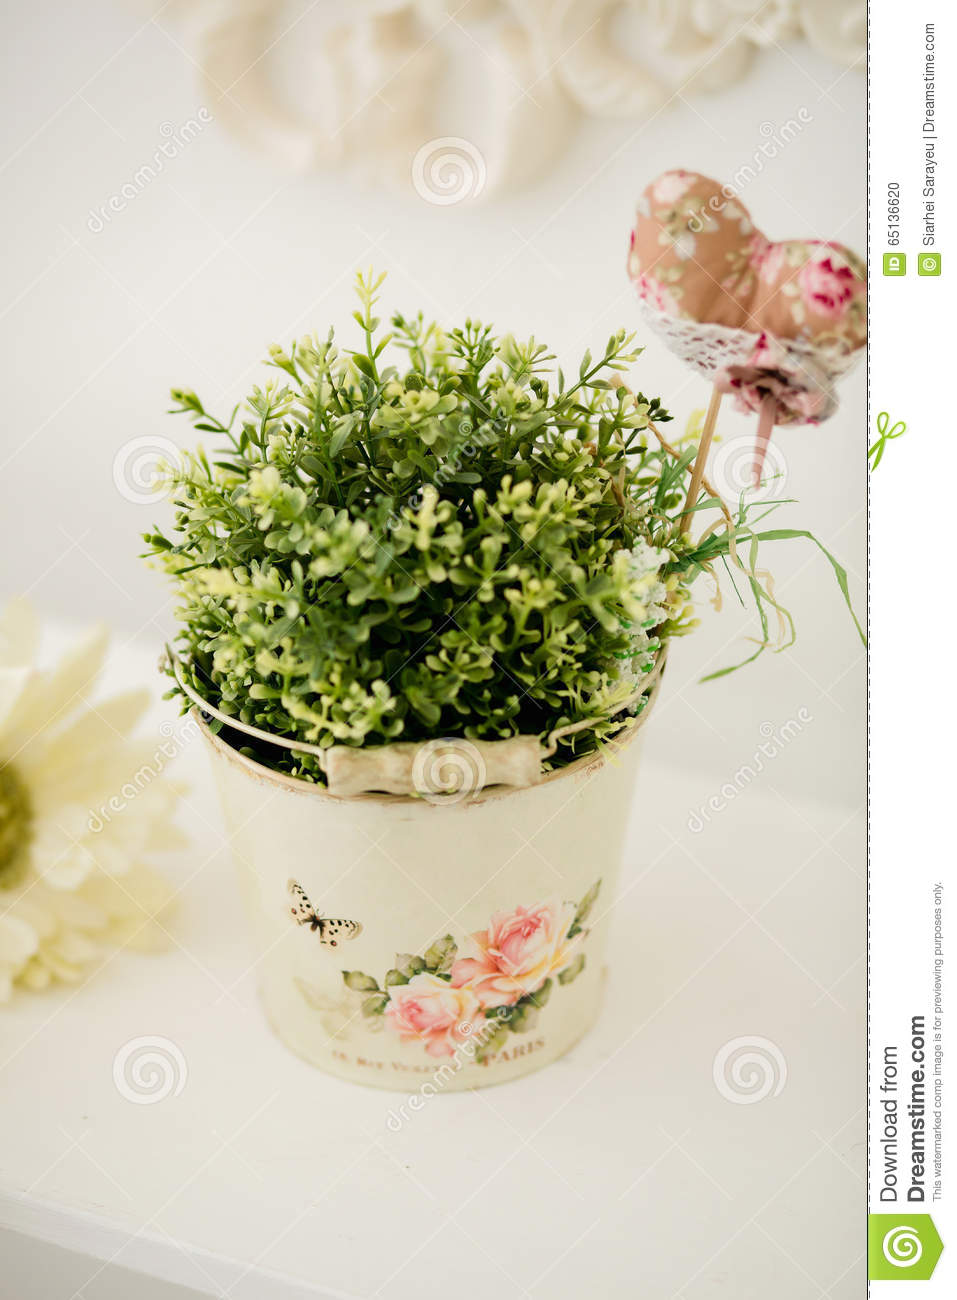 Beautiful flowers in pail on table